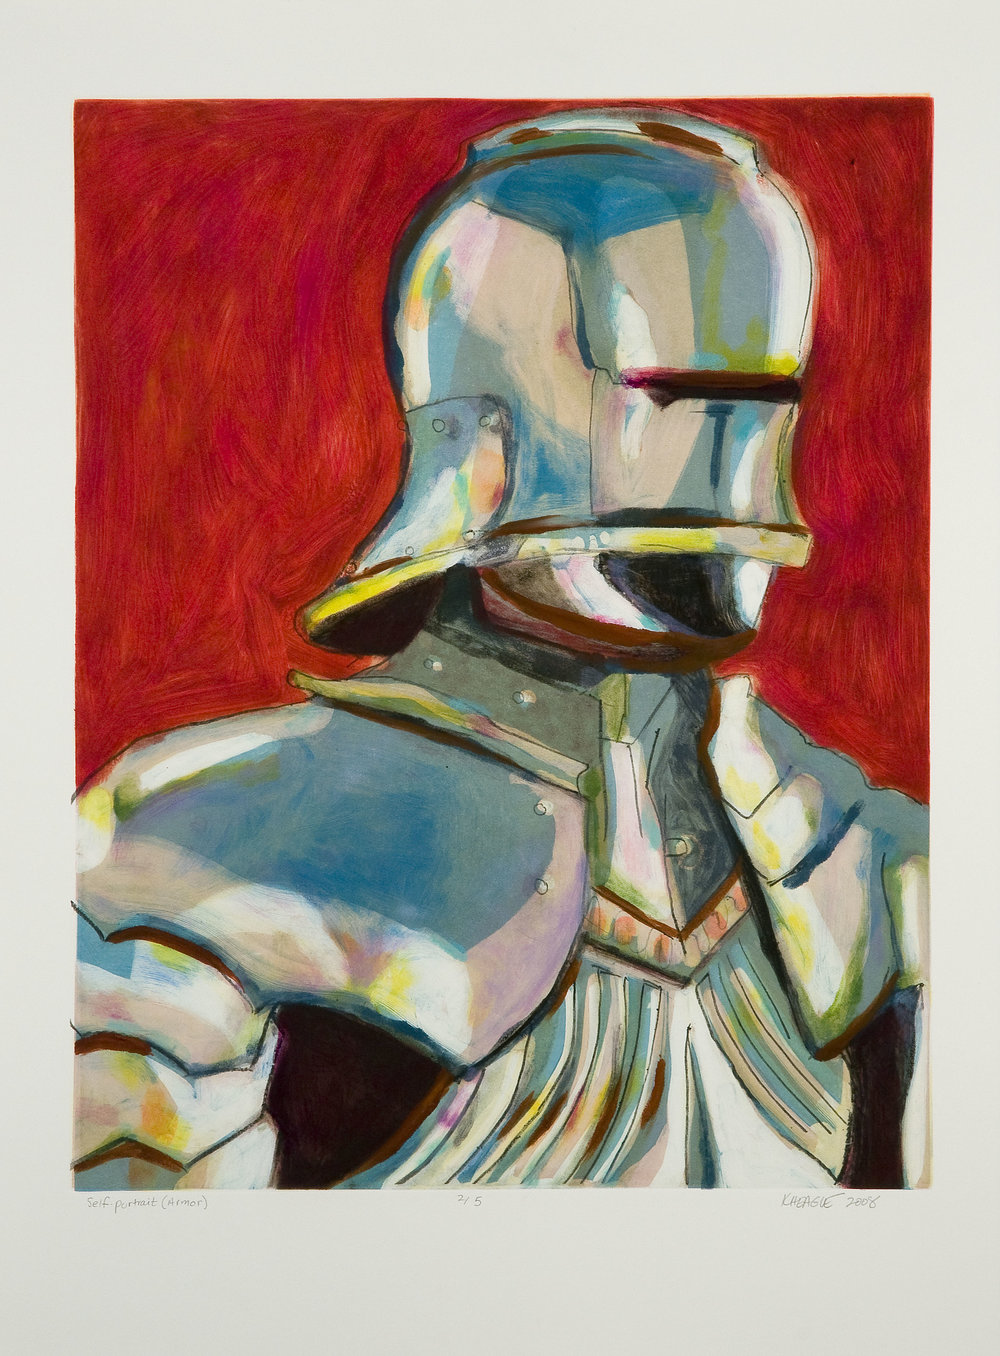 Self Portrait (Armor) (II) , 2008 Monotype Image size: 18.75 x 23.75 inches Paper size: 22 x 30 inches Series of 5